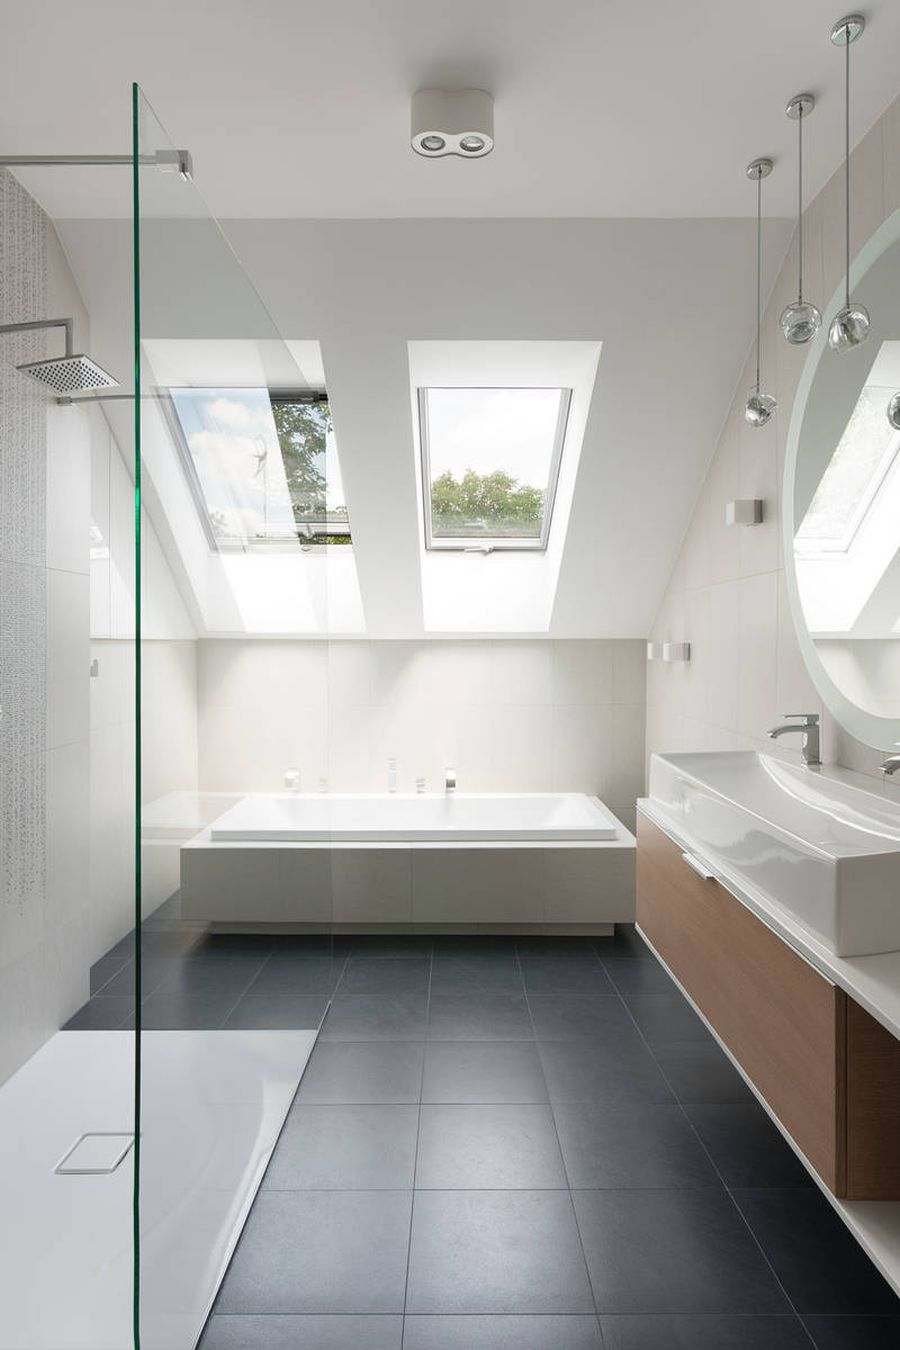 Spa Like Bathroom Colors: Contemporary Home In Poland Displays Minimalism With A